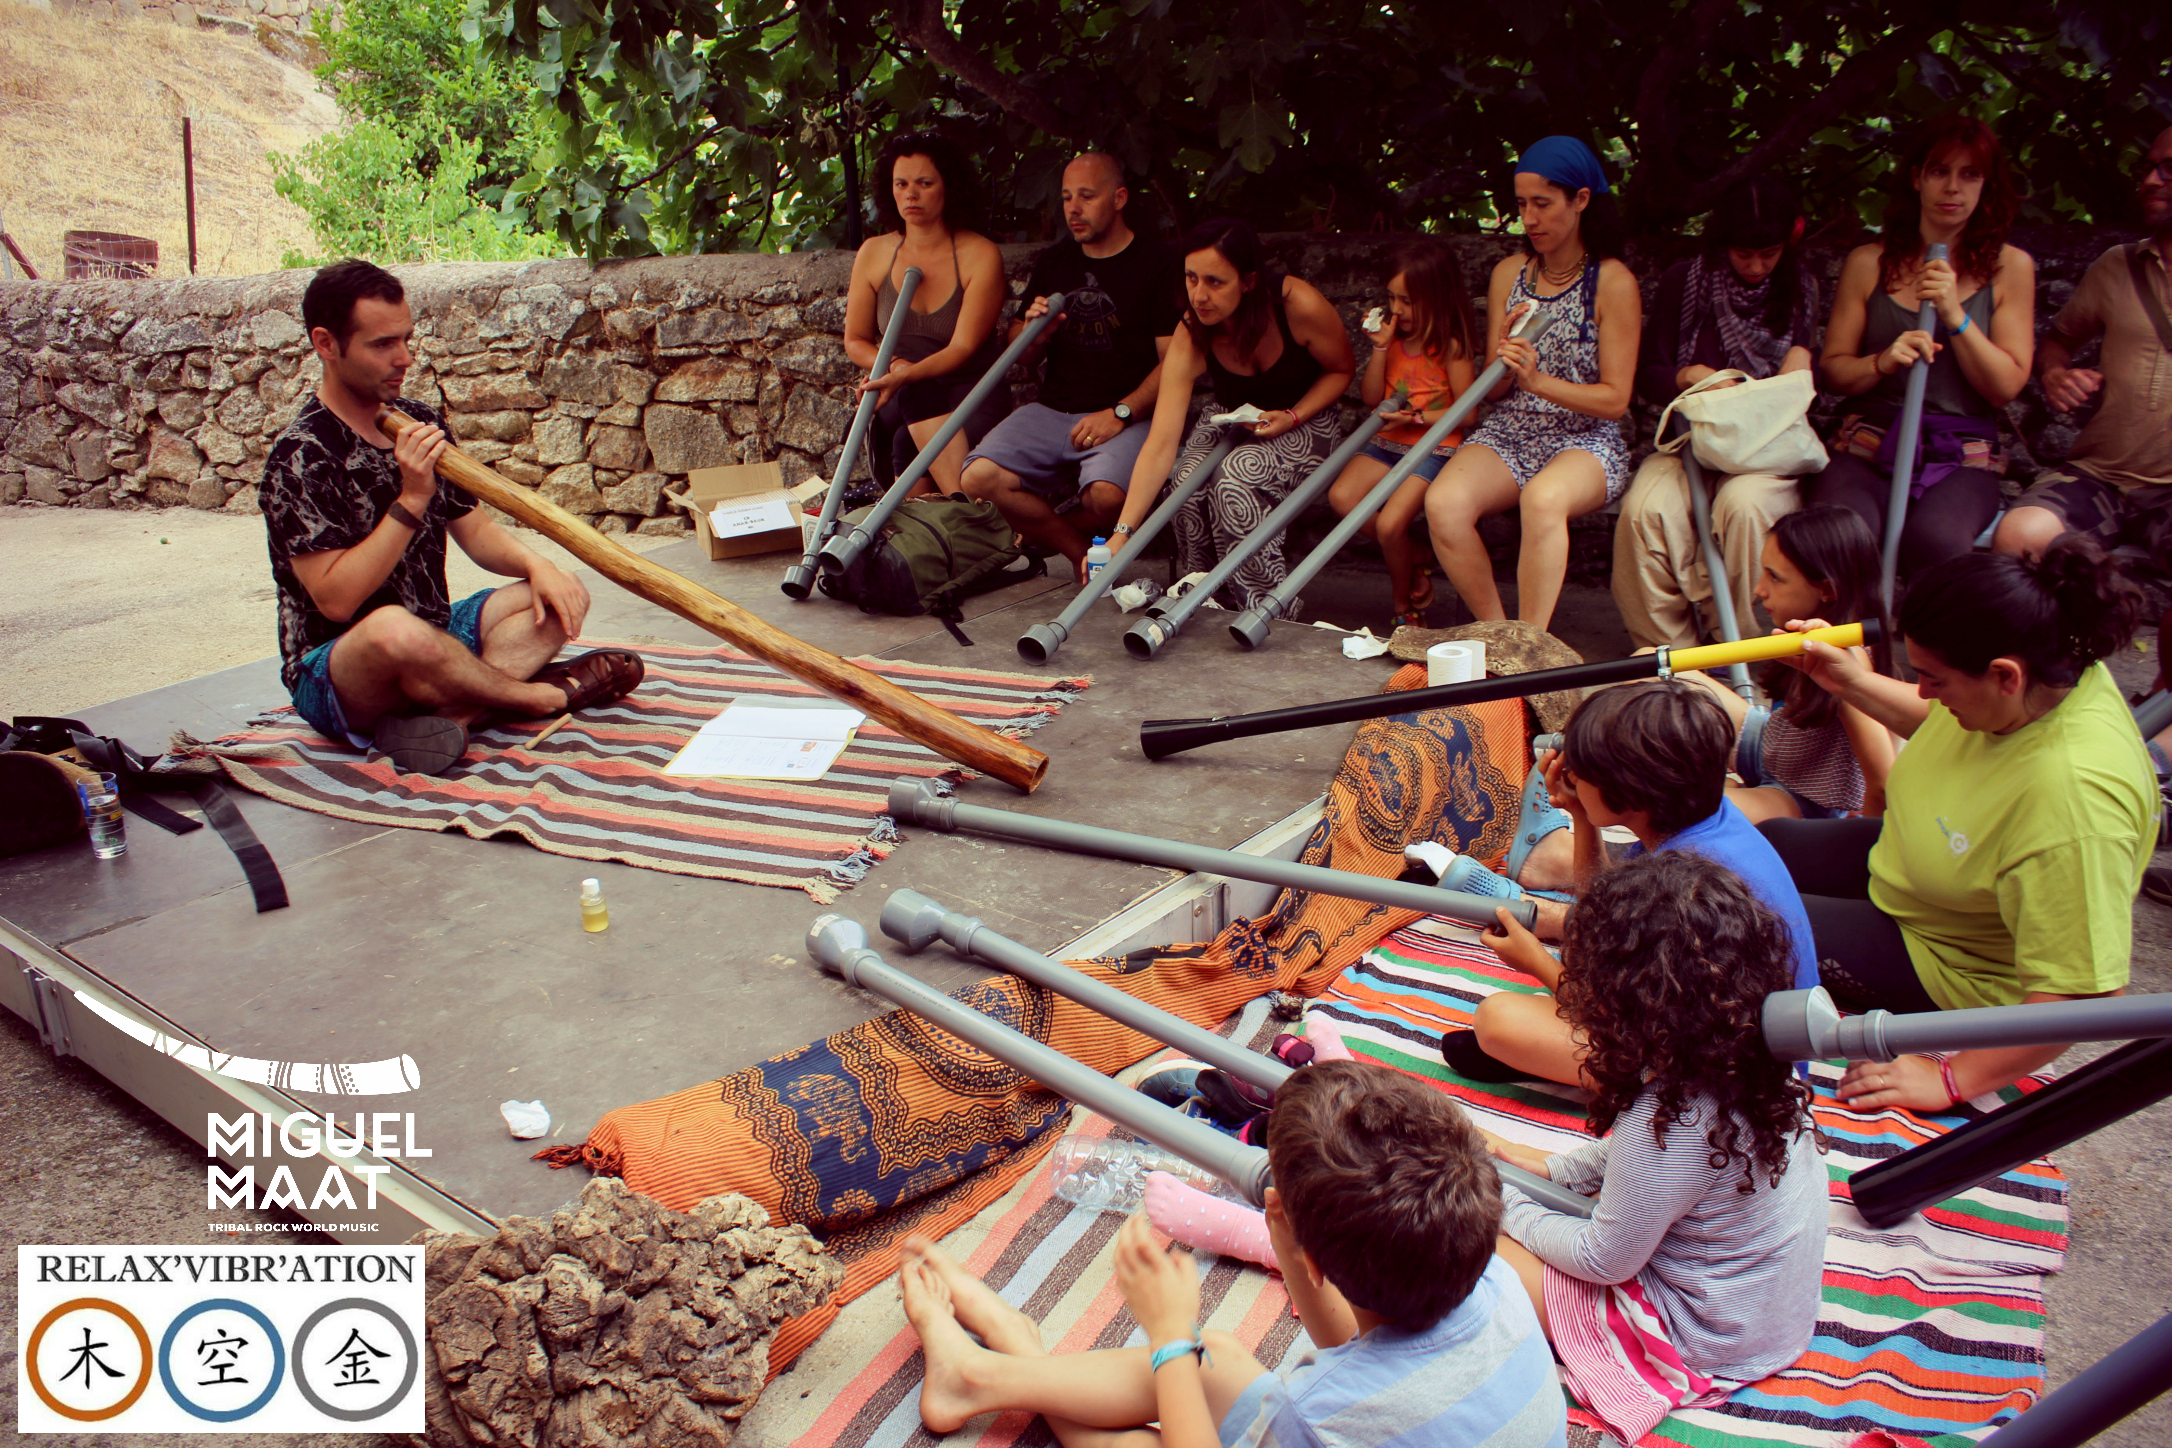 miguel maat didgeridoo workshop1